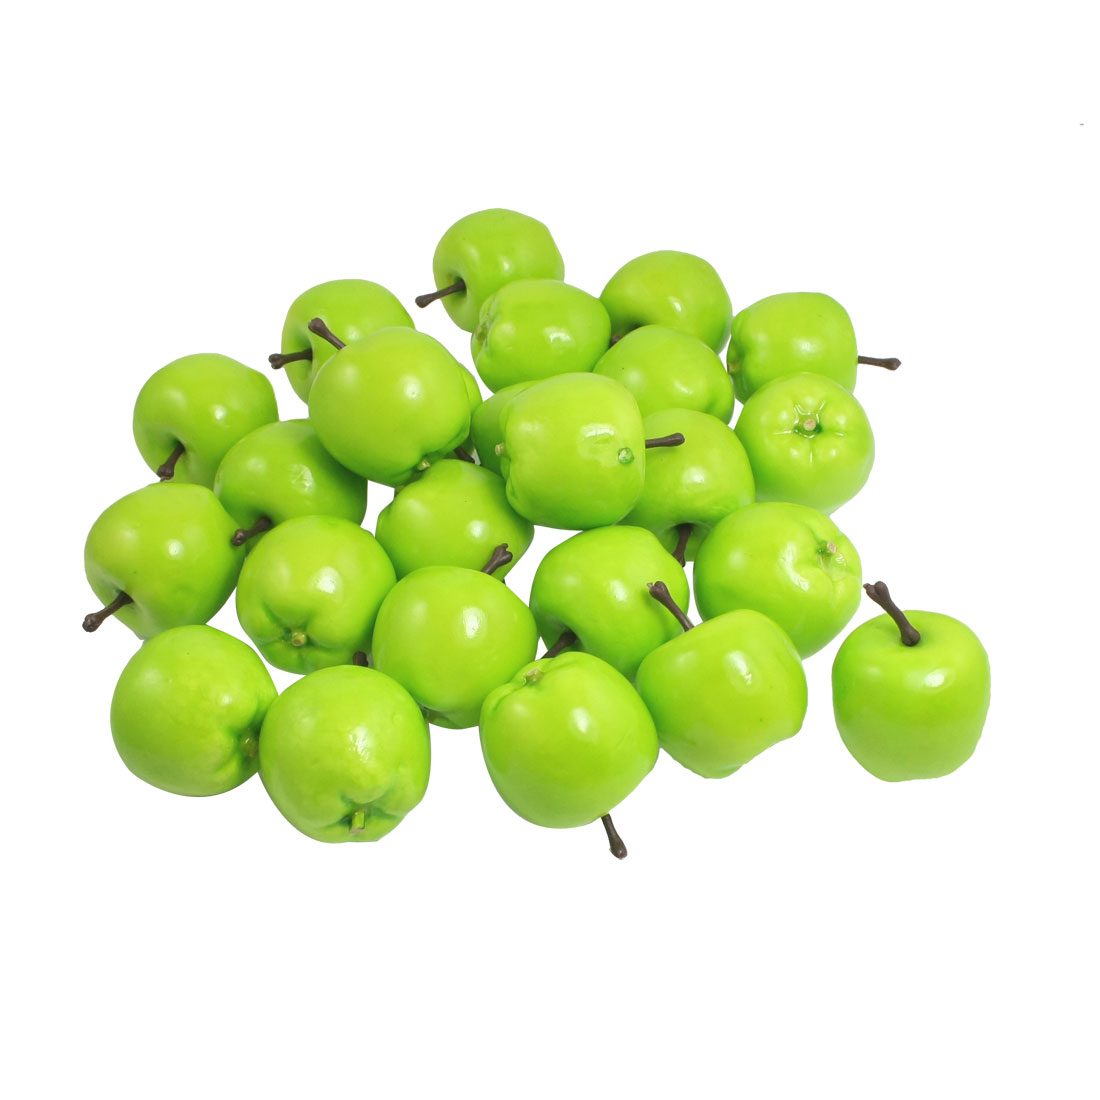 Faux Fake Foam Craft Apple Simulation Fruits Desk Ornament Decor 25 Pcs